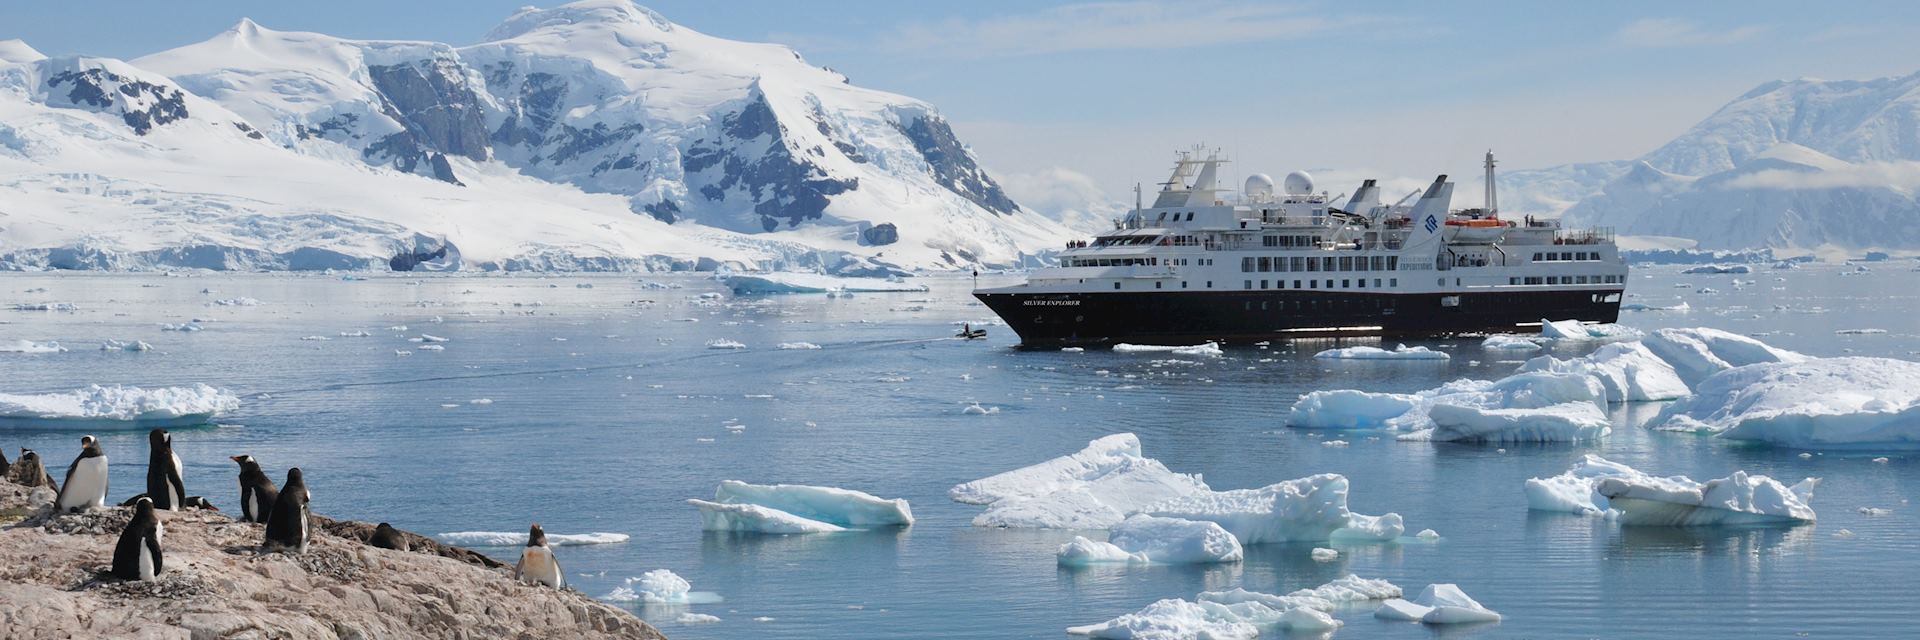 Silver Explorer in the Antarctic